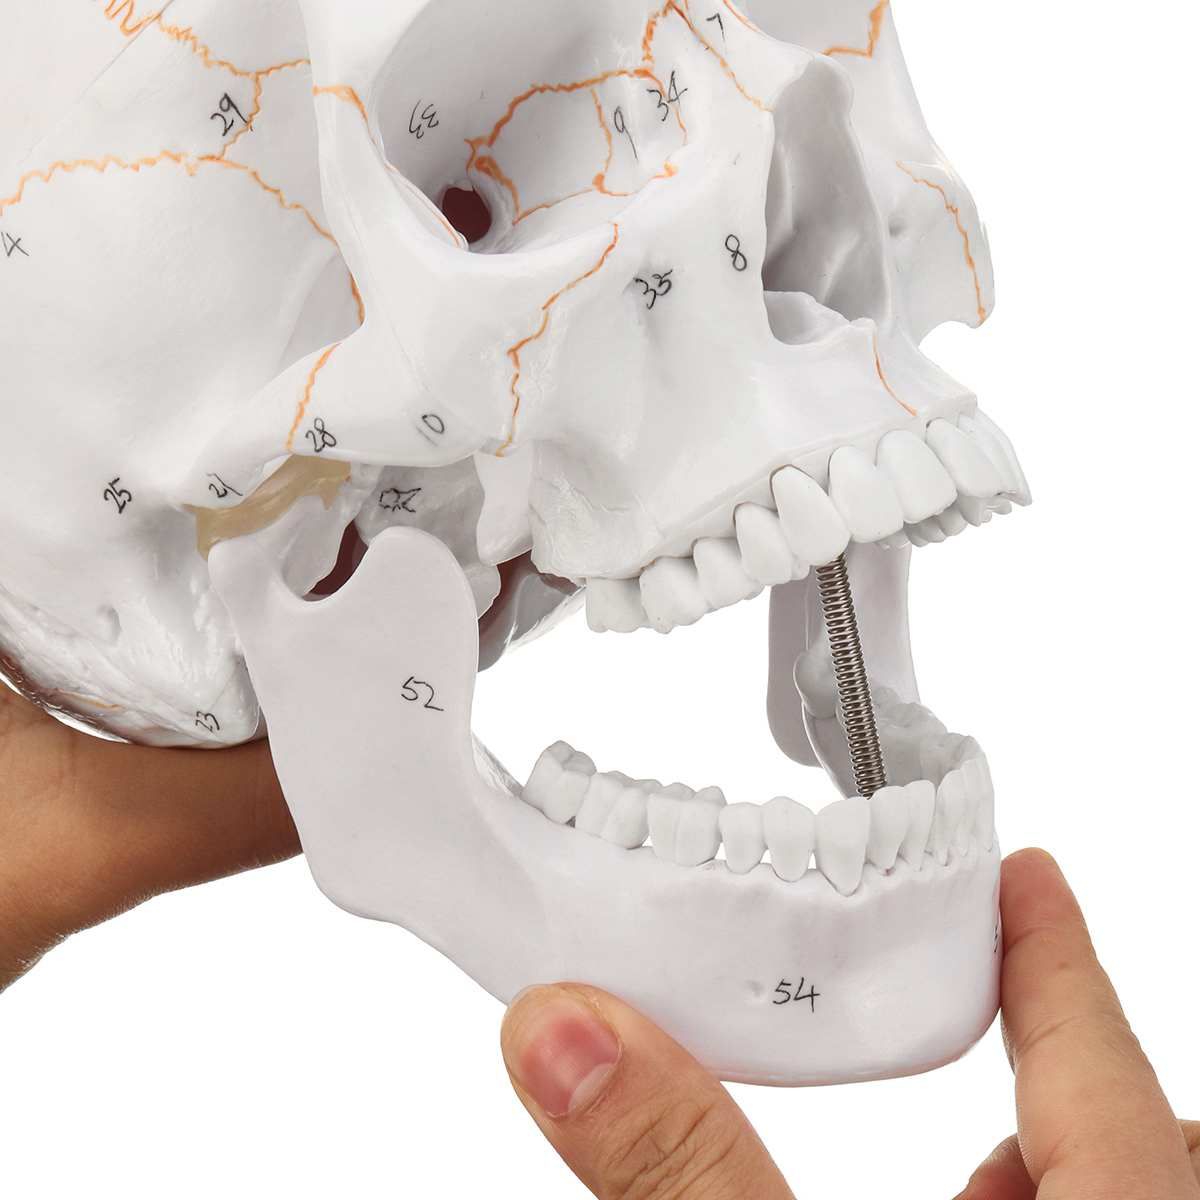 Head Skeleton Skull 1:1 Model Medical Science Teaching Life-size Skull for School Human Anatomy Precise Adult Head Medical ModelHead Skeleton Skull 1:1 Model Medical Science Teaching Life-size Skull for School Human Anatomy Precise Adult Head Medical Model